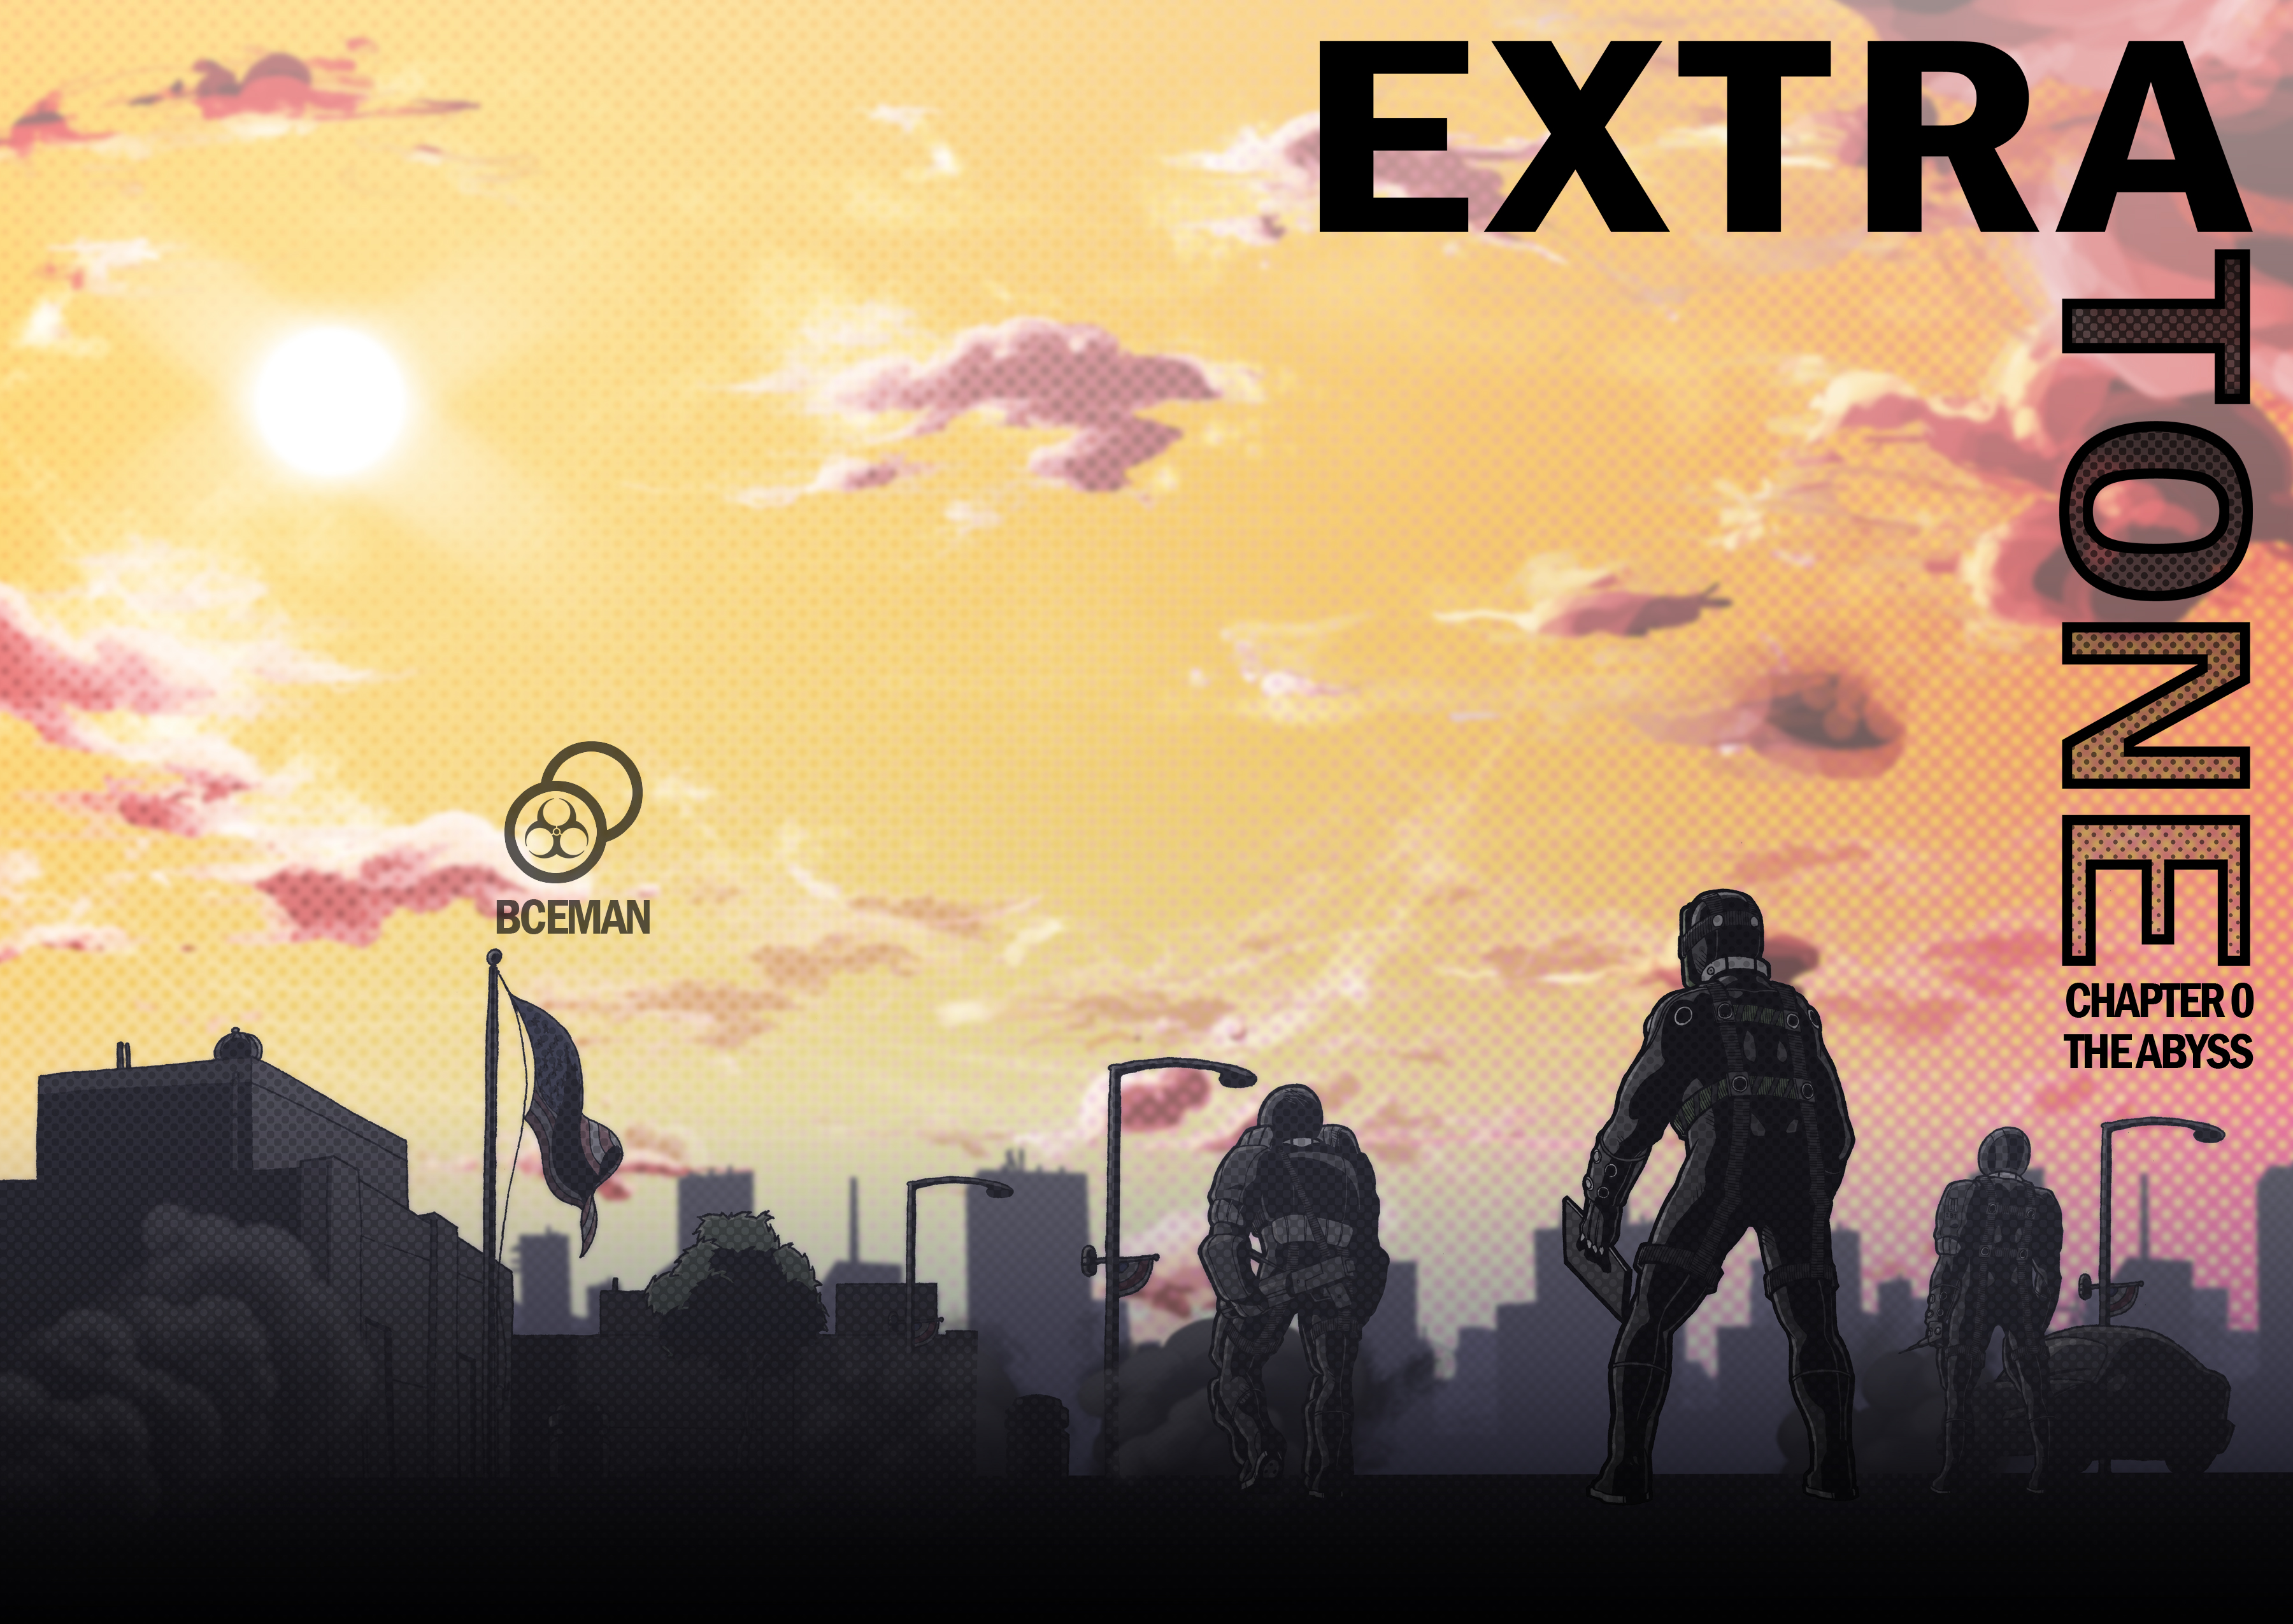 EXTRATONE THE ABYSS cover